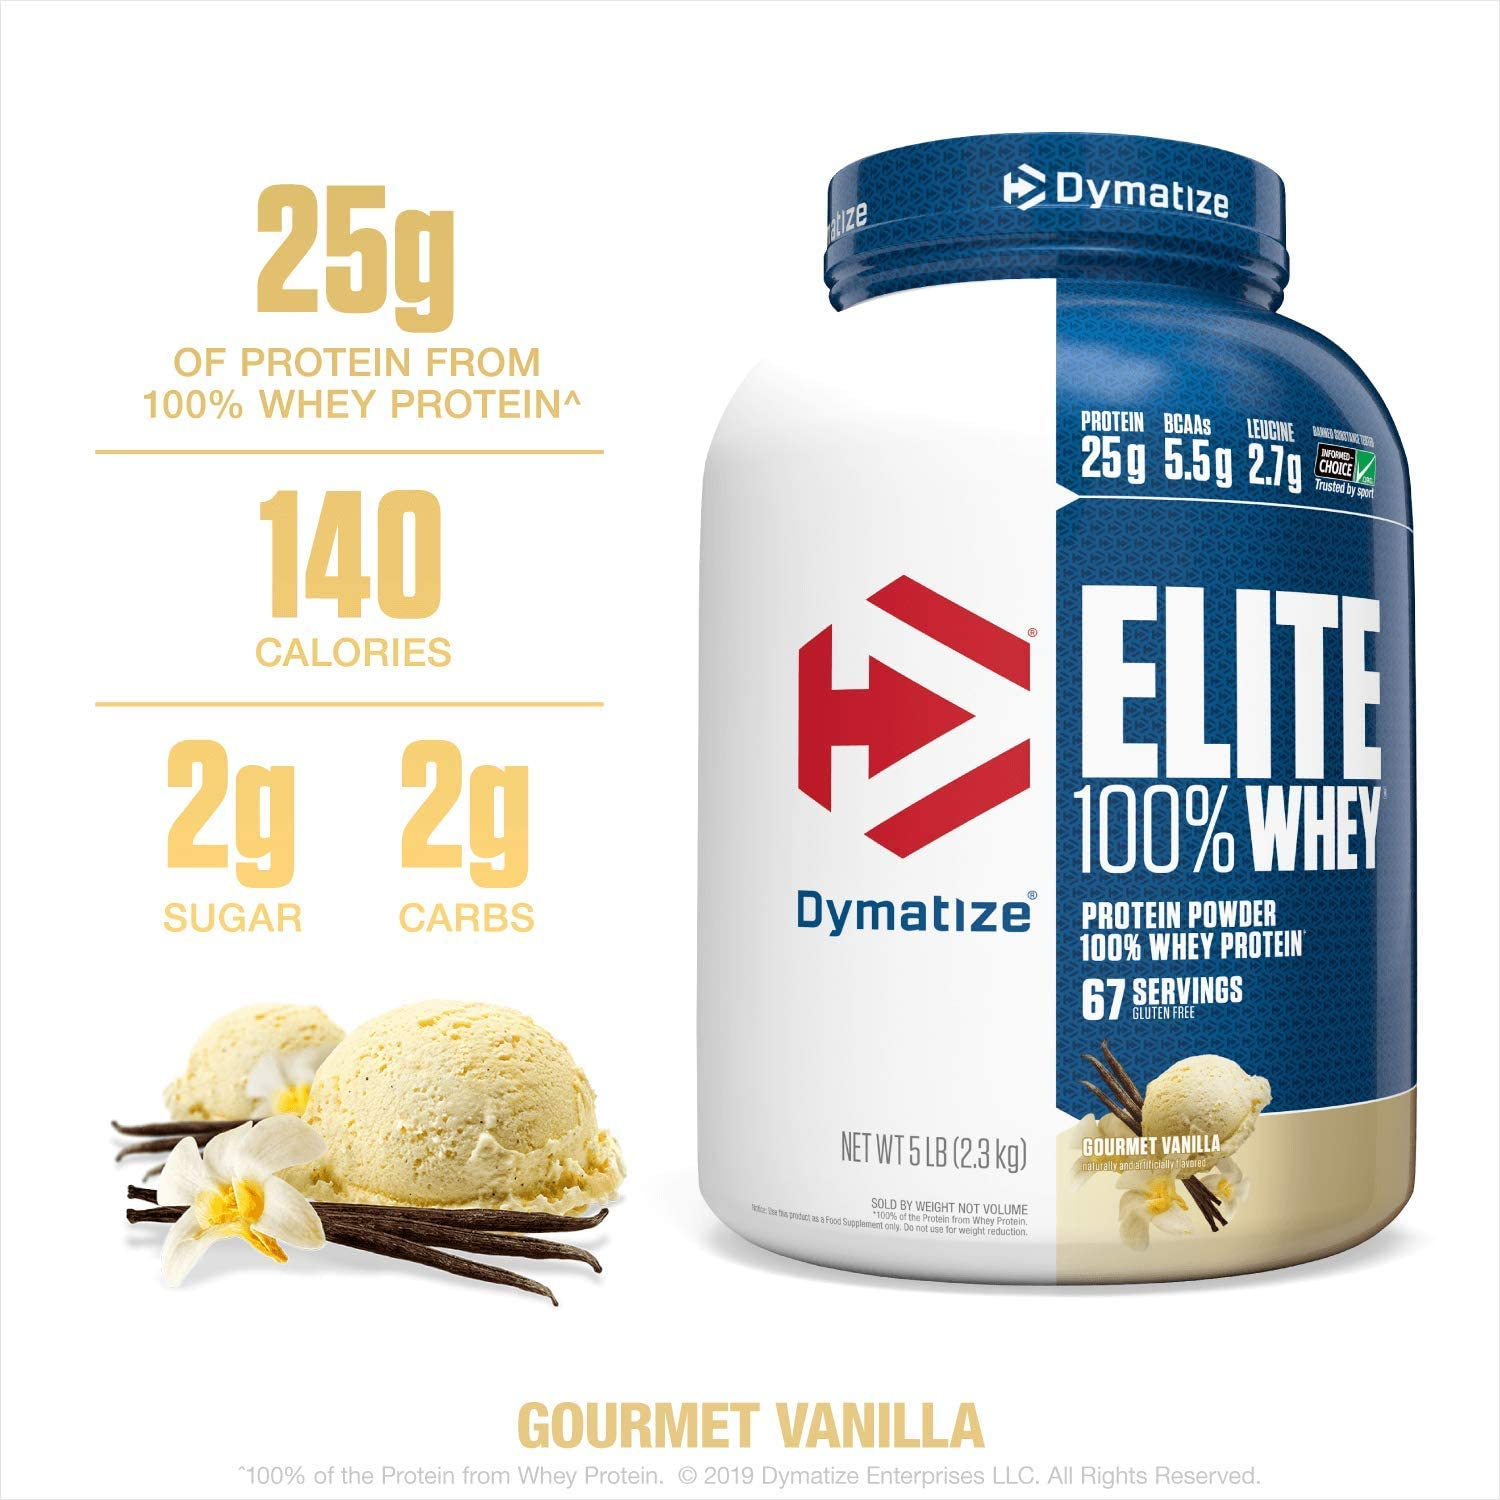 Dymatize Elite 100% Whey Protein Powder, 25g Protein, 5.5g BCAAs & 2.7g L-Leucine, Quick Absorbing & Fast Digesting for Optimal Muscle Recovery